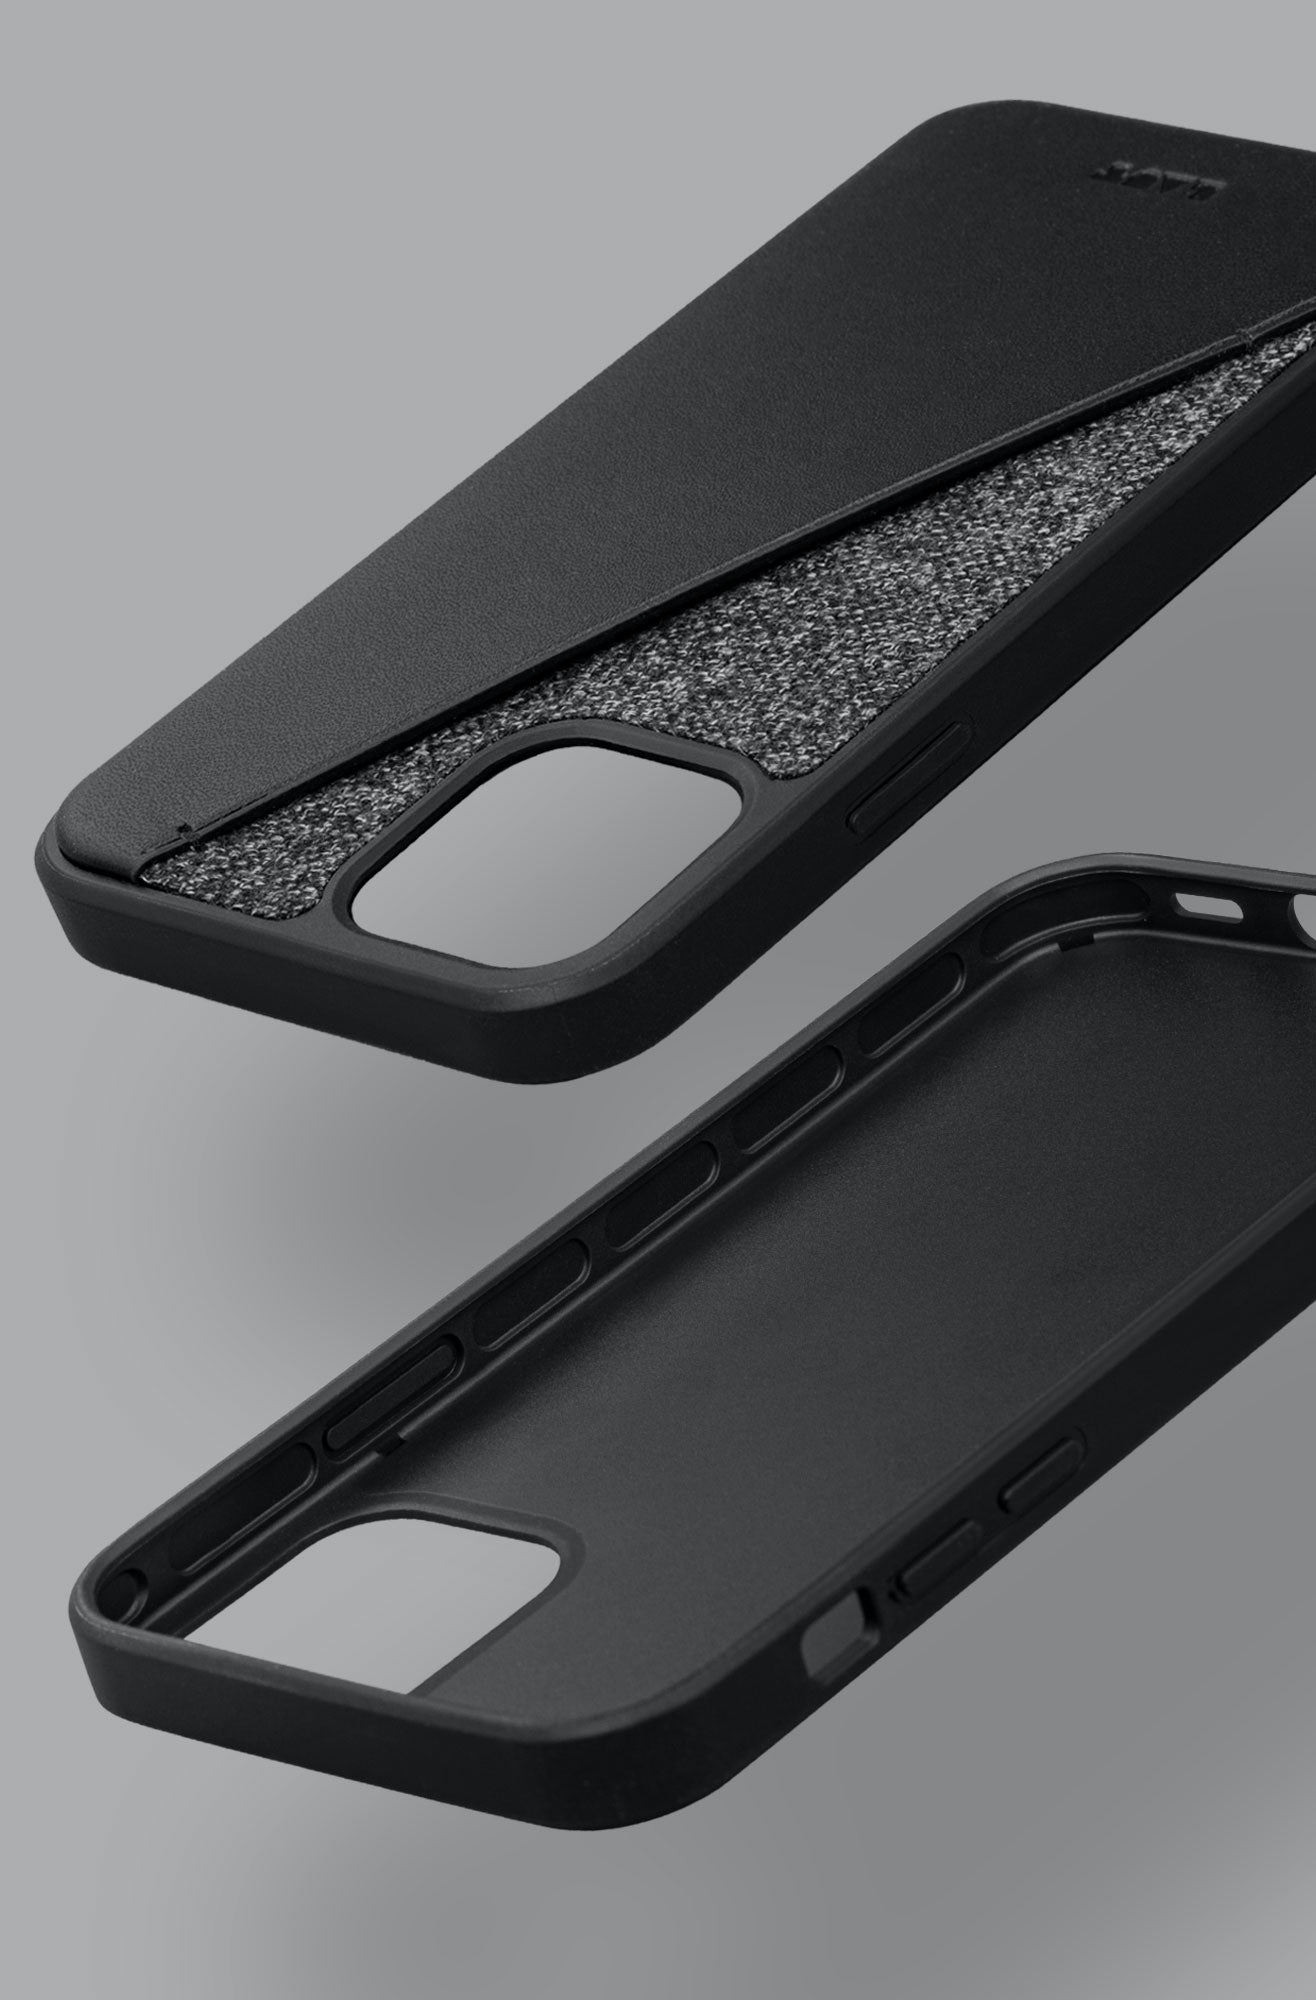 LAUT - INFLIGHT Card case for iPhone 12 series